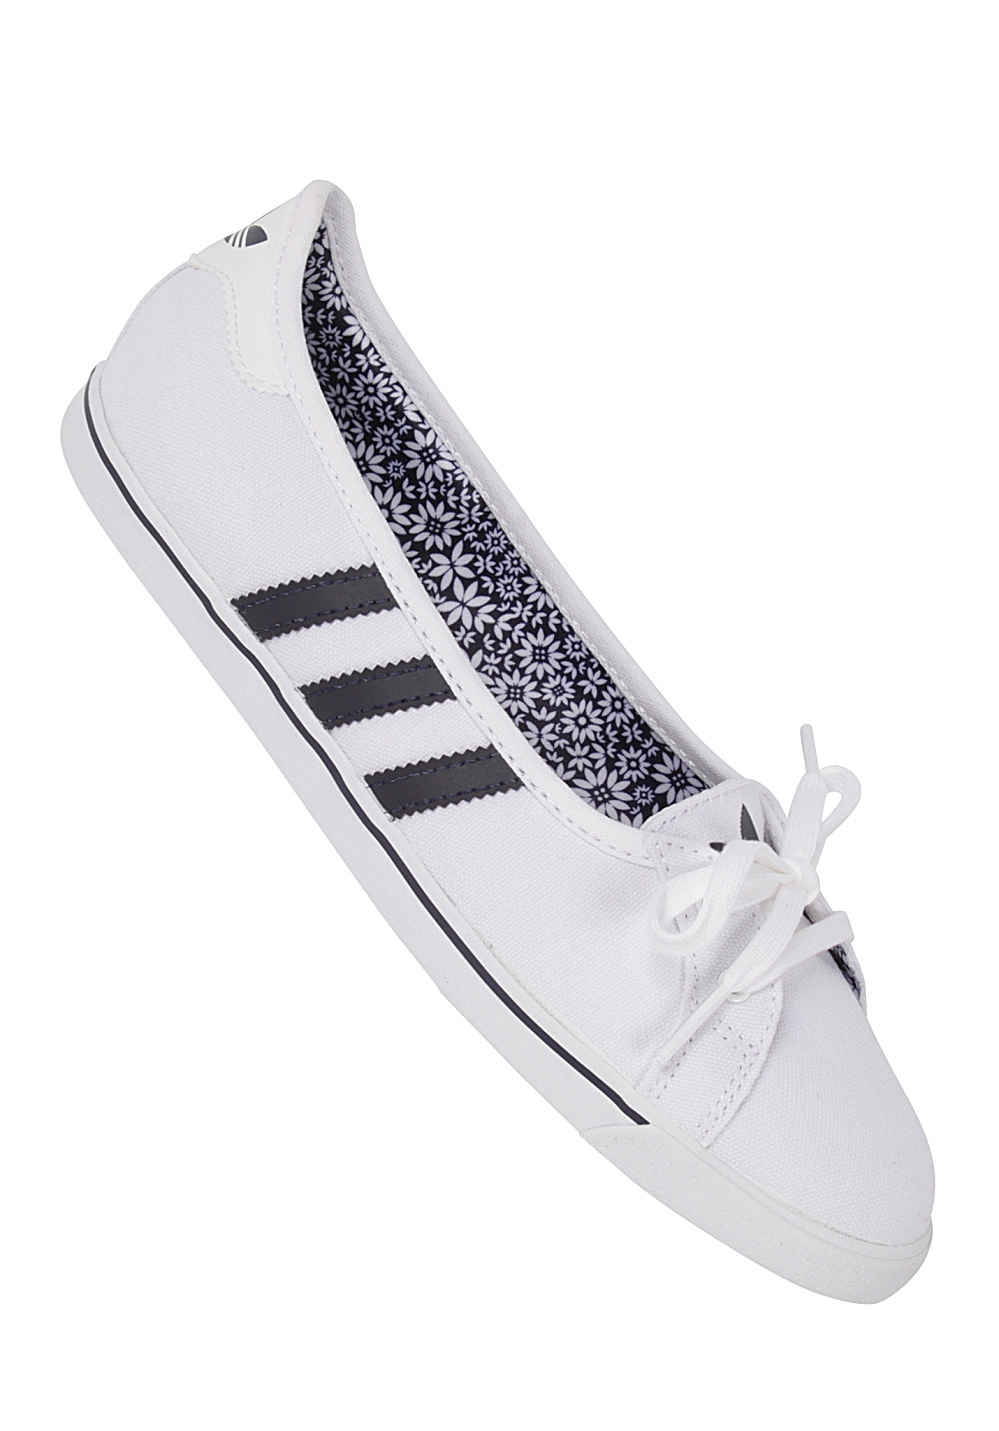 Other Brands Like Planet Shoes